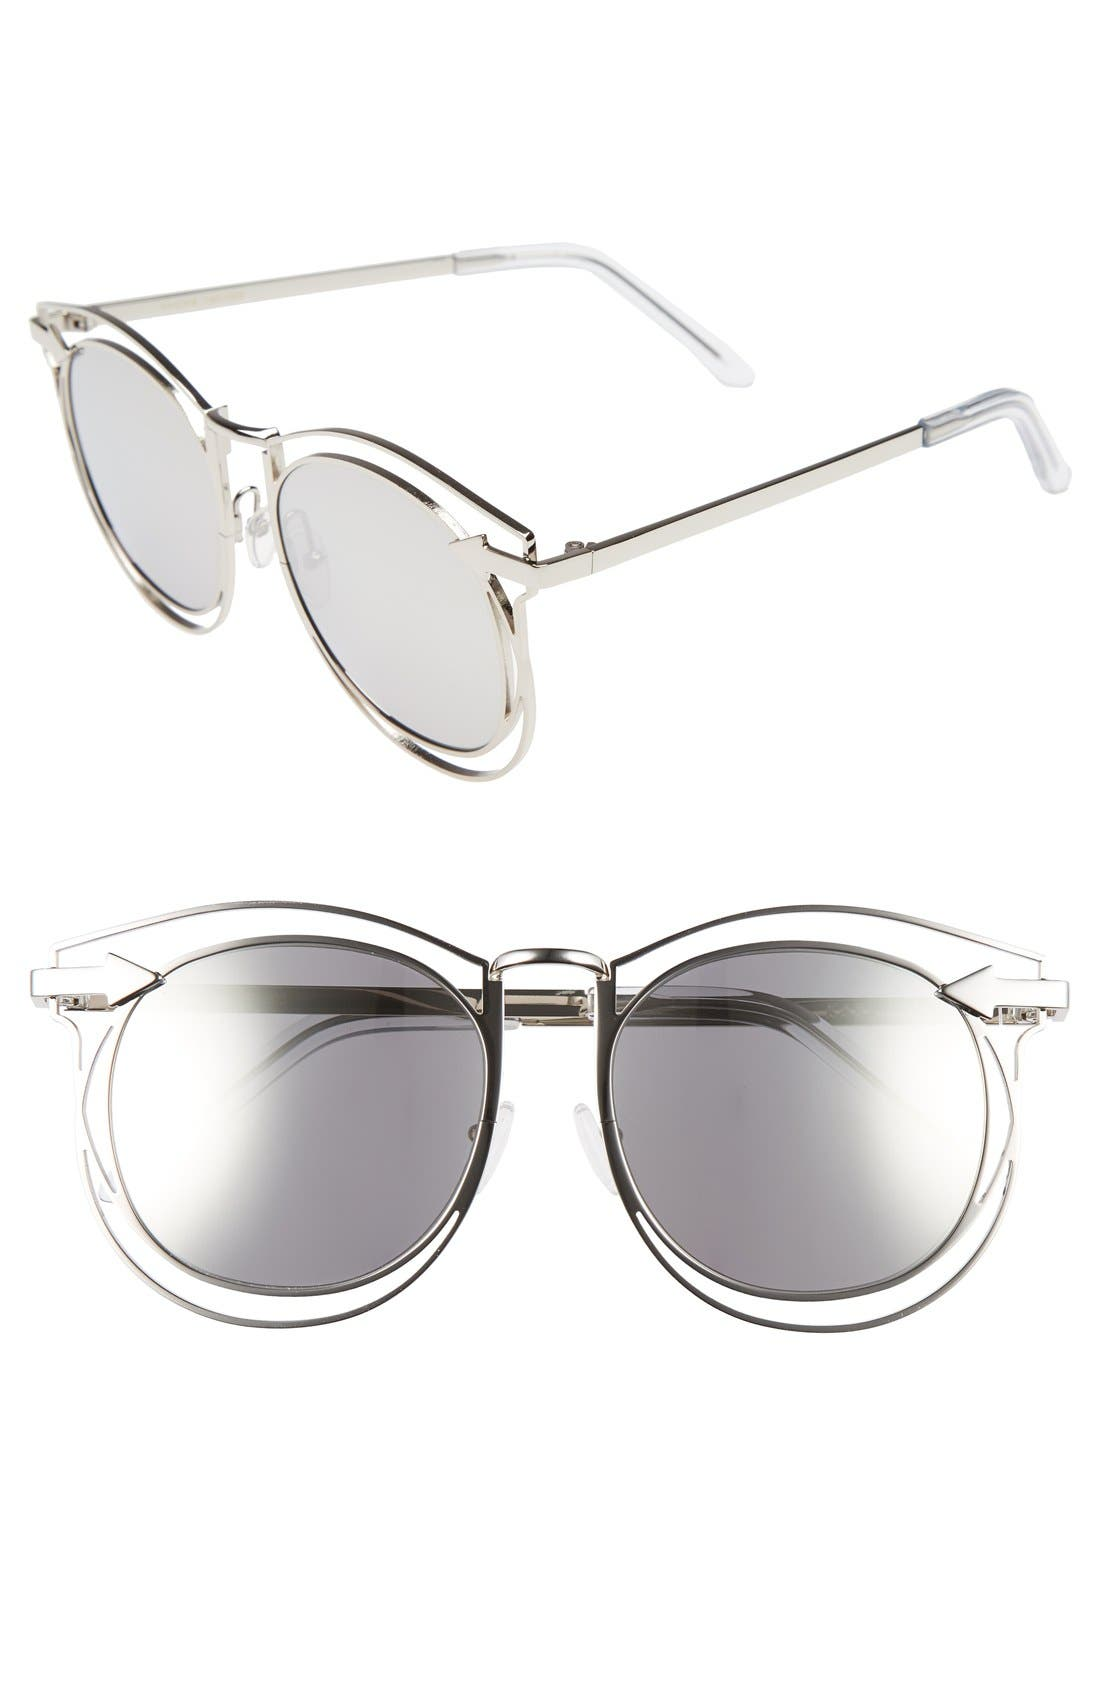 Alternate Image 1 Selected - Karen Walker 'Simone' 54mm Retro Sunglasses